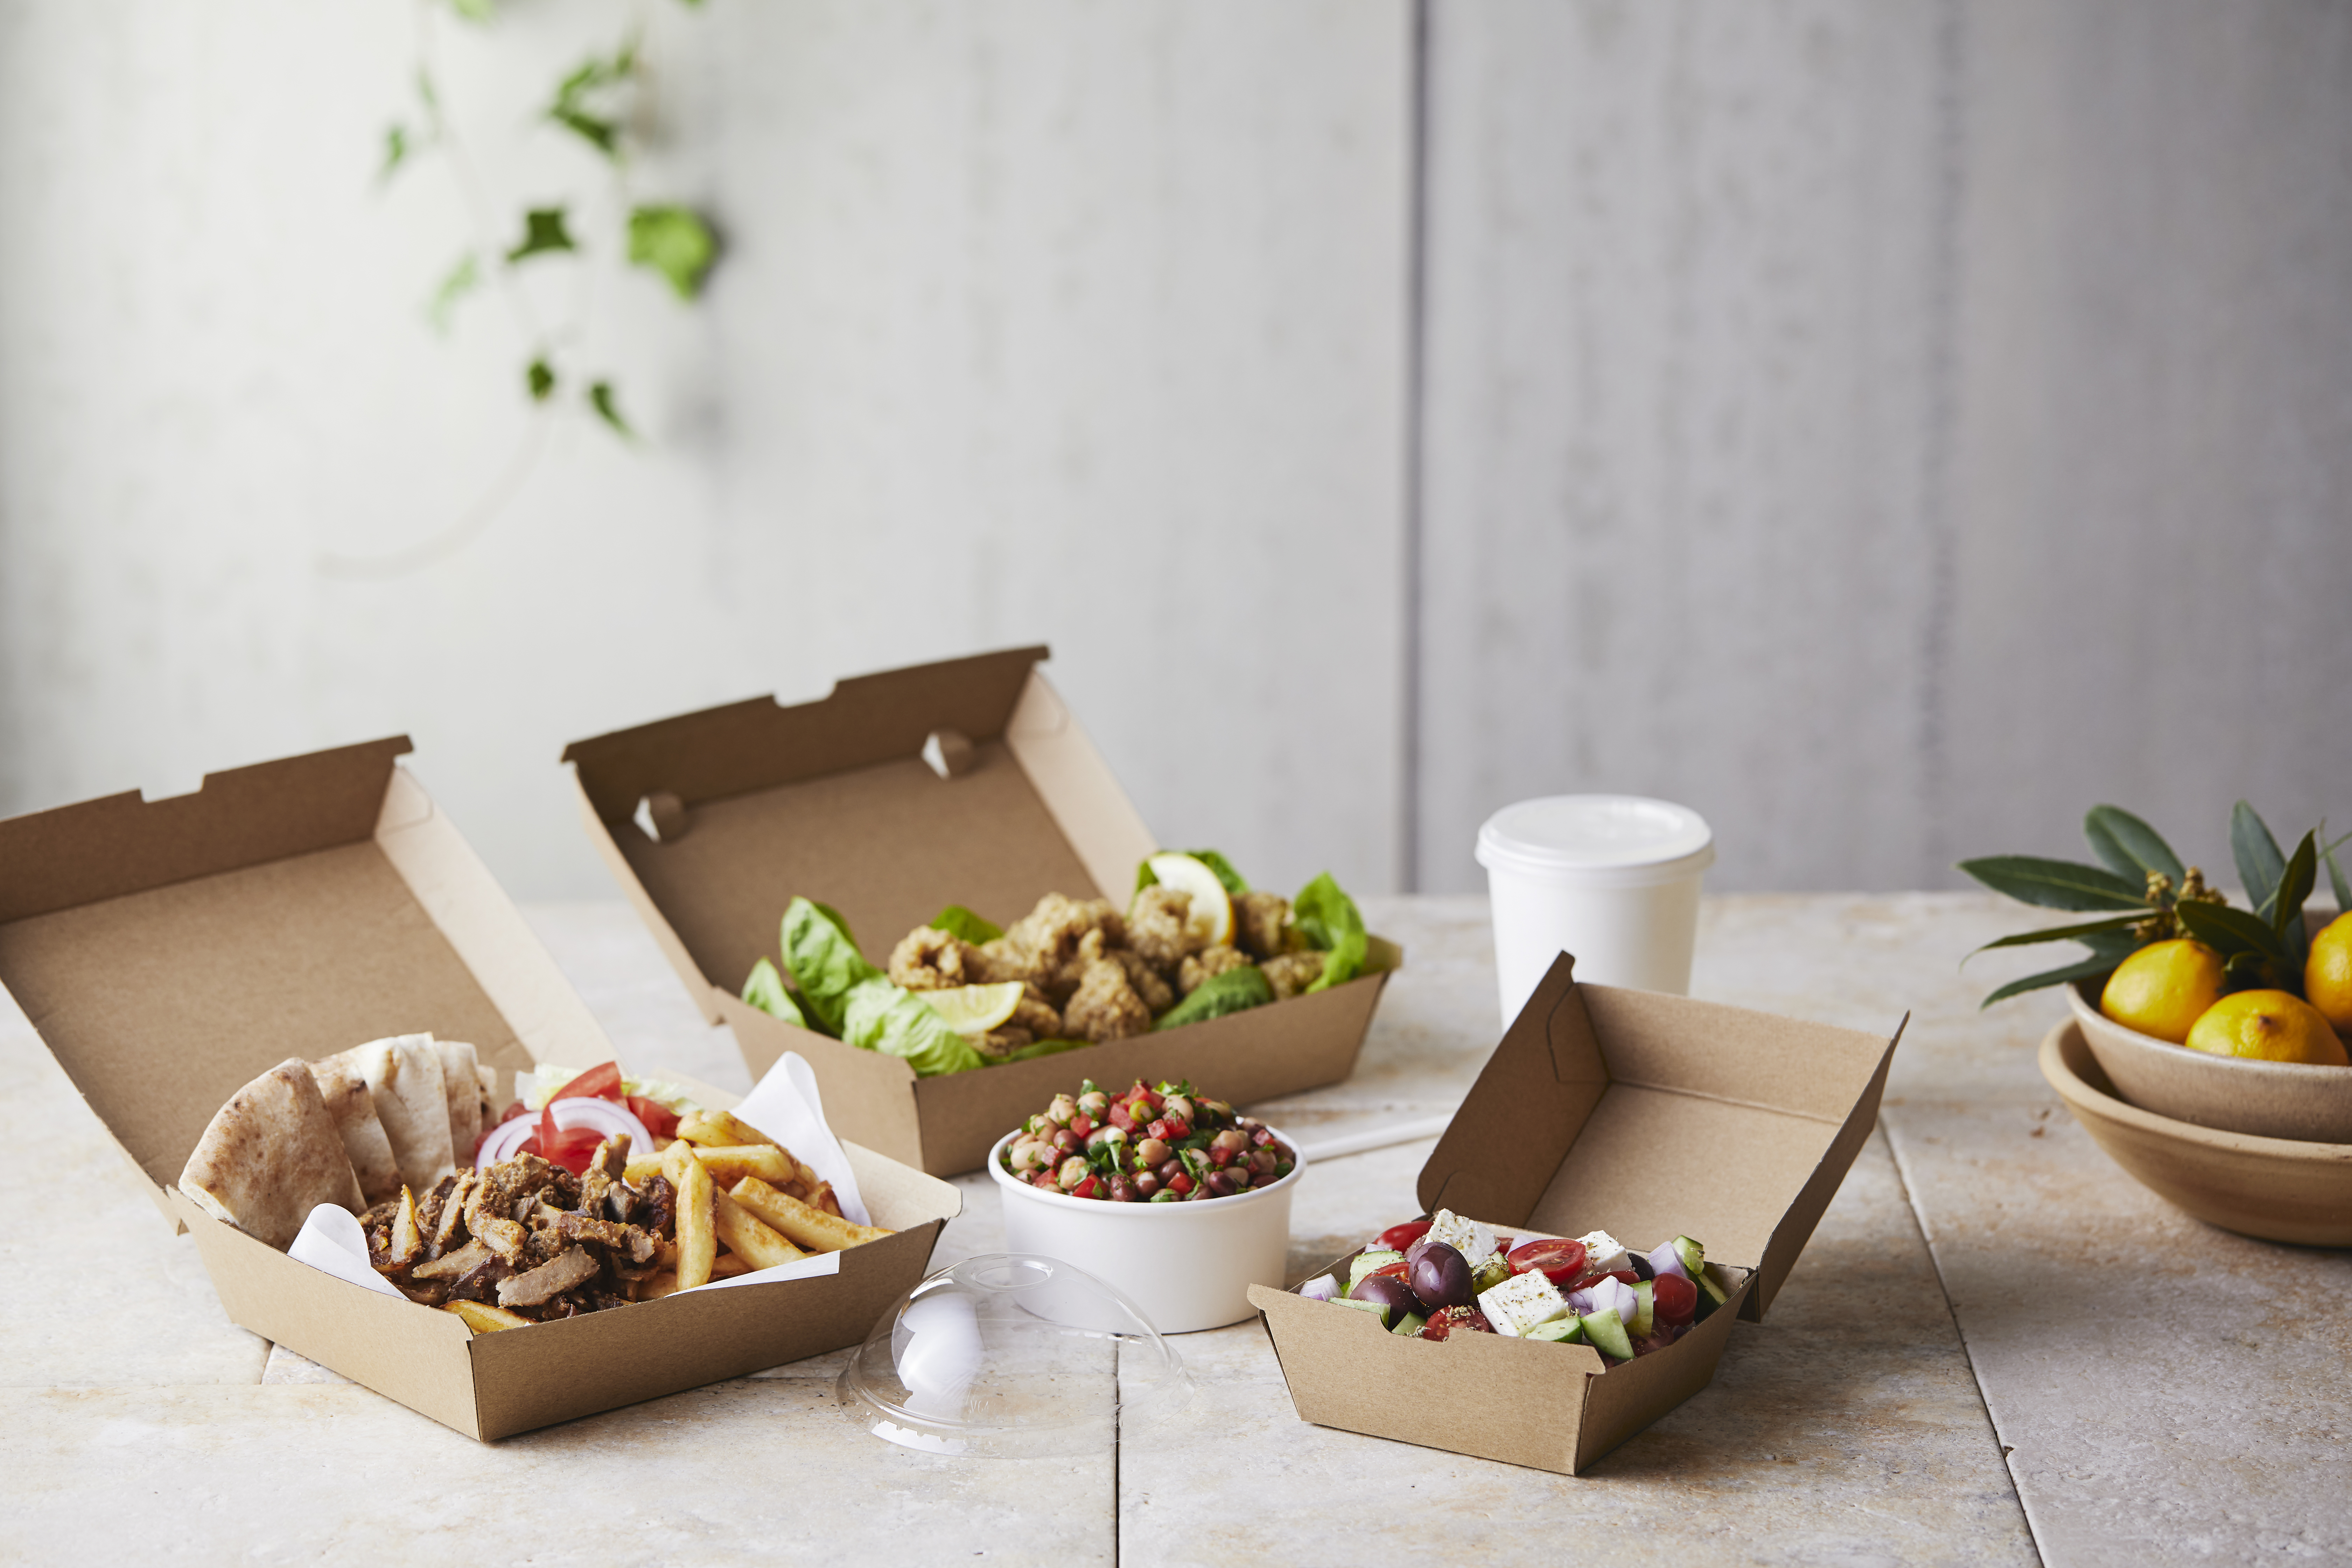 Takeaway chips, meat and salad served in kraft cartons.